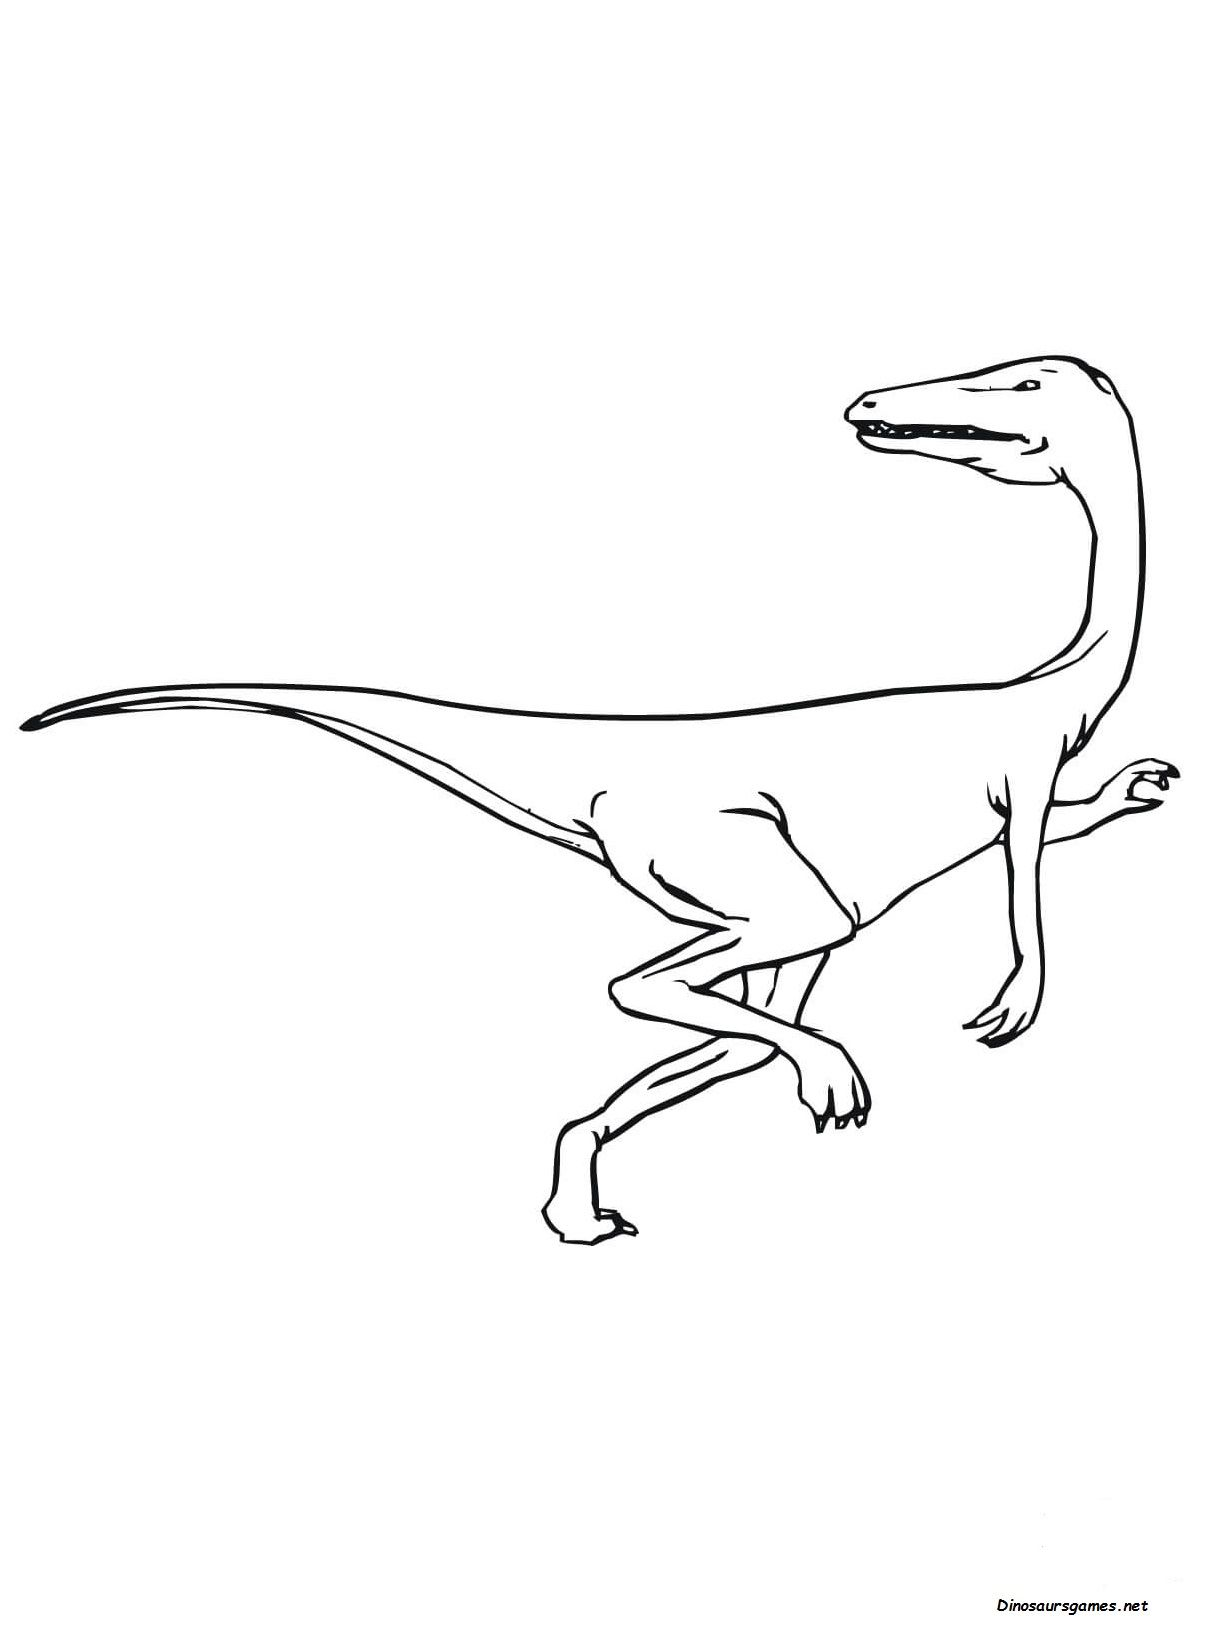 There Are Many Children Who Love The Velociraptor Dinosaurs And